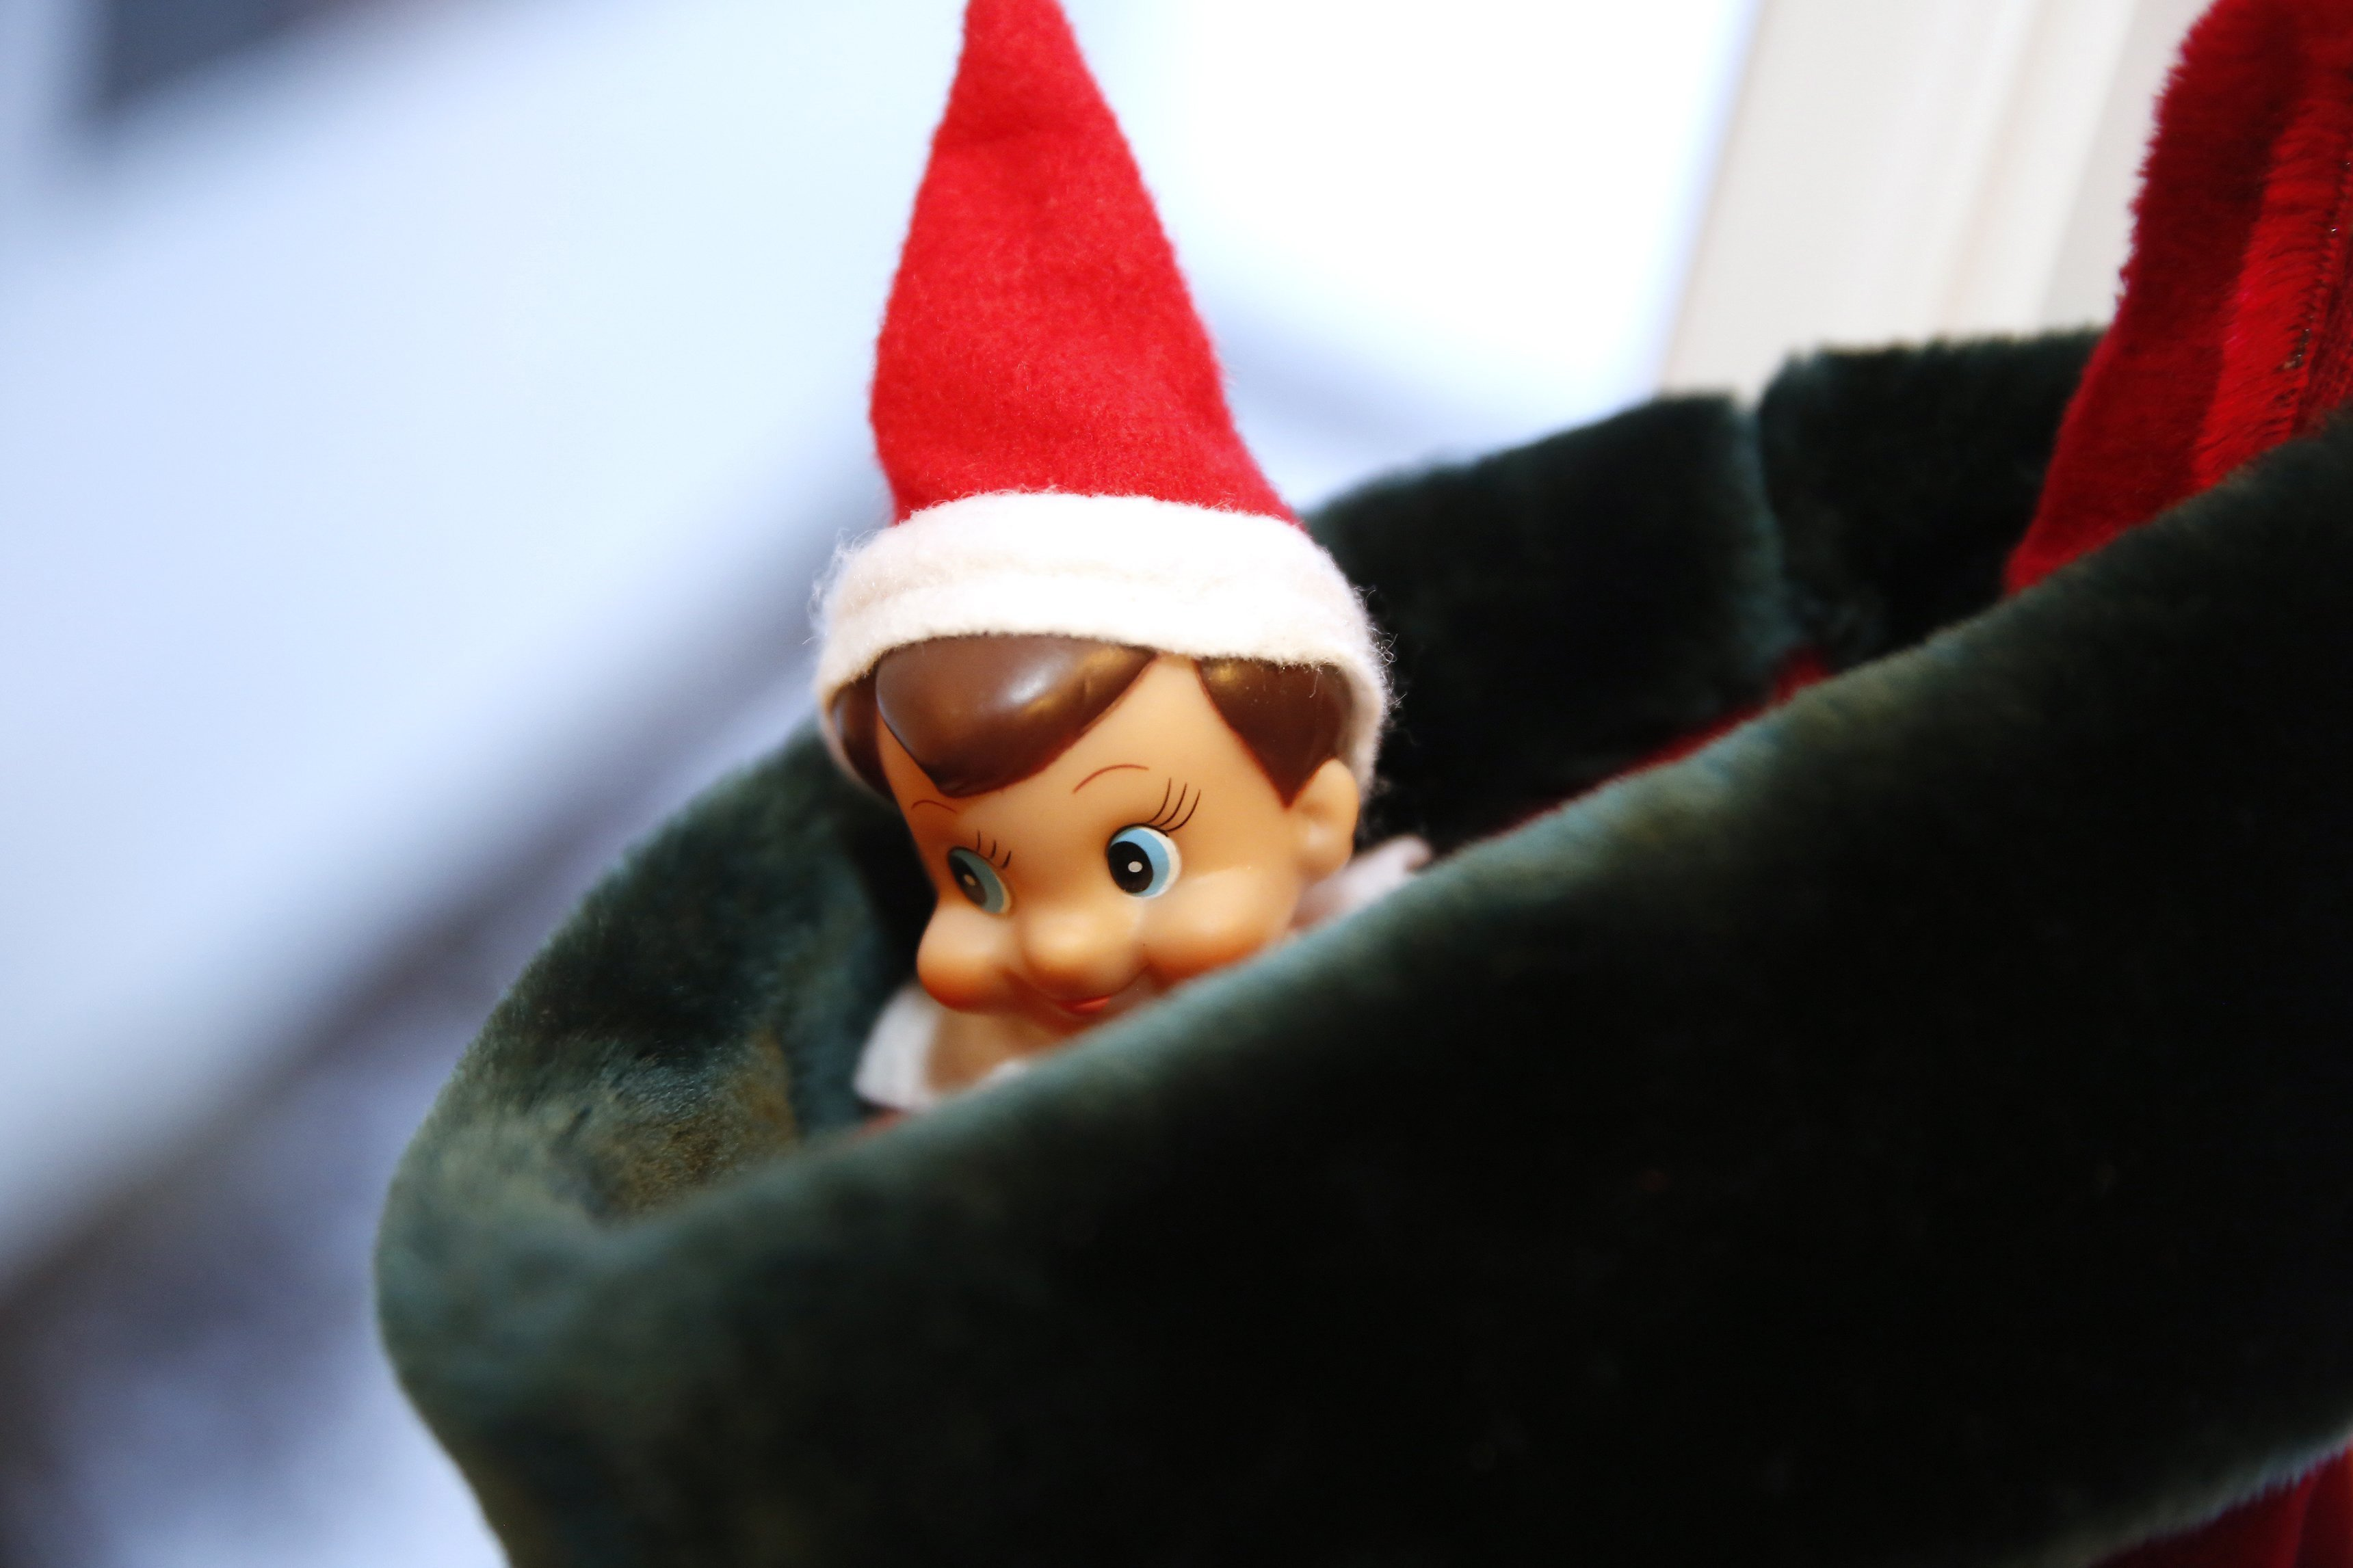 367ea83c22ec6 The Elf on the Shelf is the greatest fraud ever pulled on children - Vox